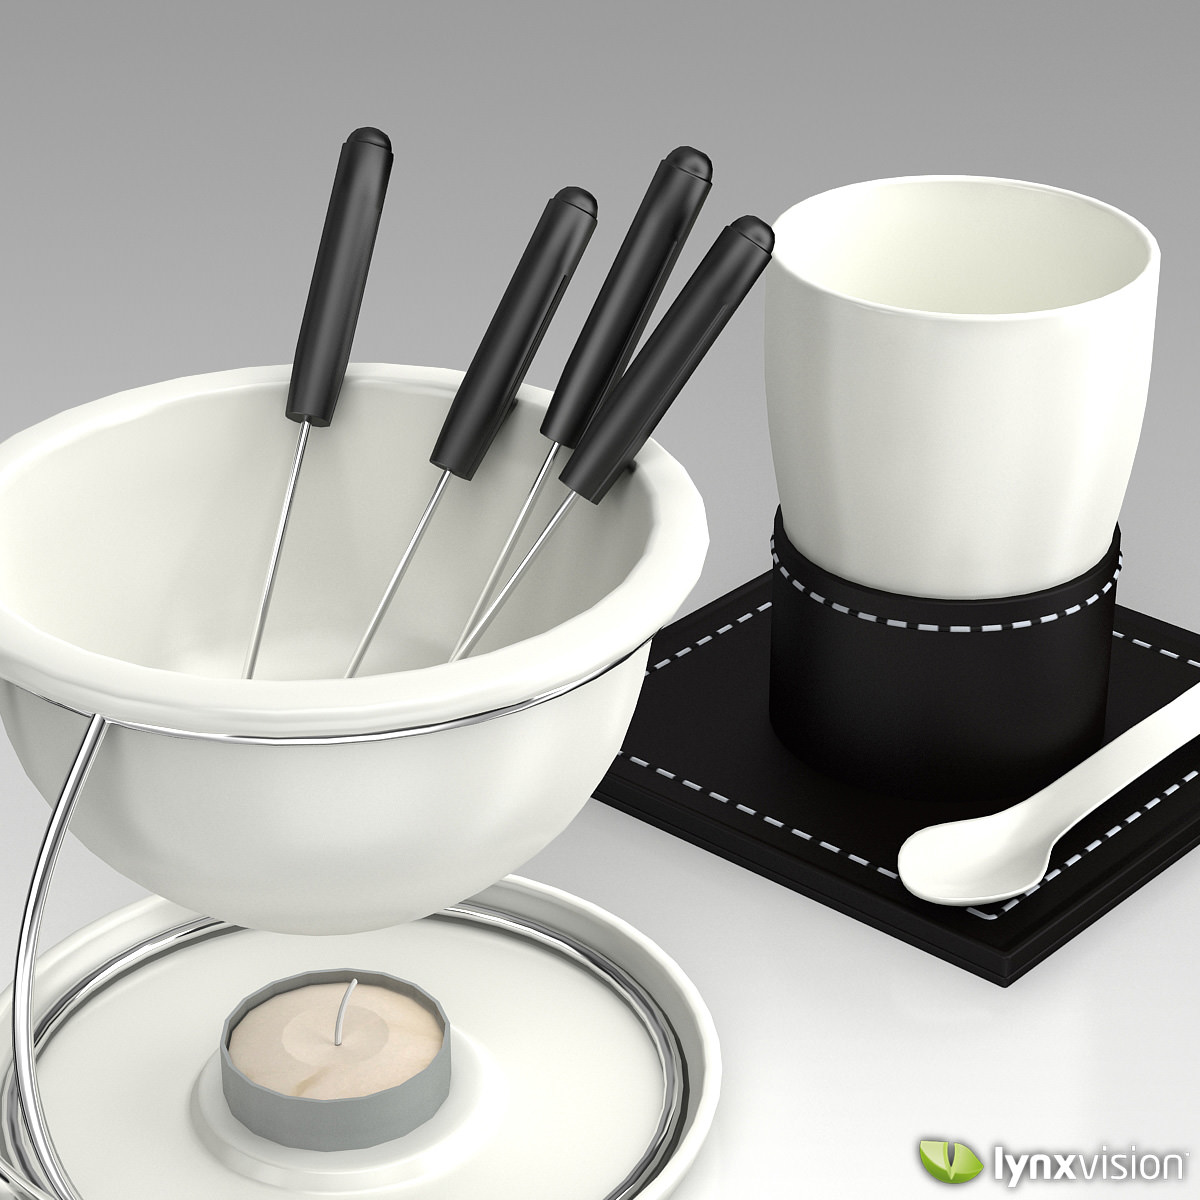 porcelain fondue set 3d model max obj fbx c4d lwo lw. Black Bedroom Furniture Sets. Home Design Ideas